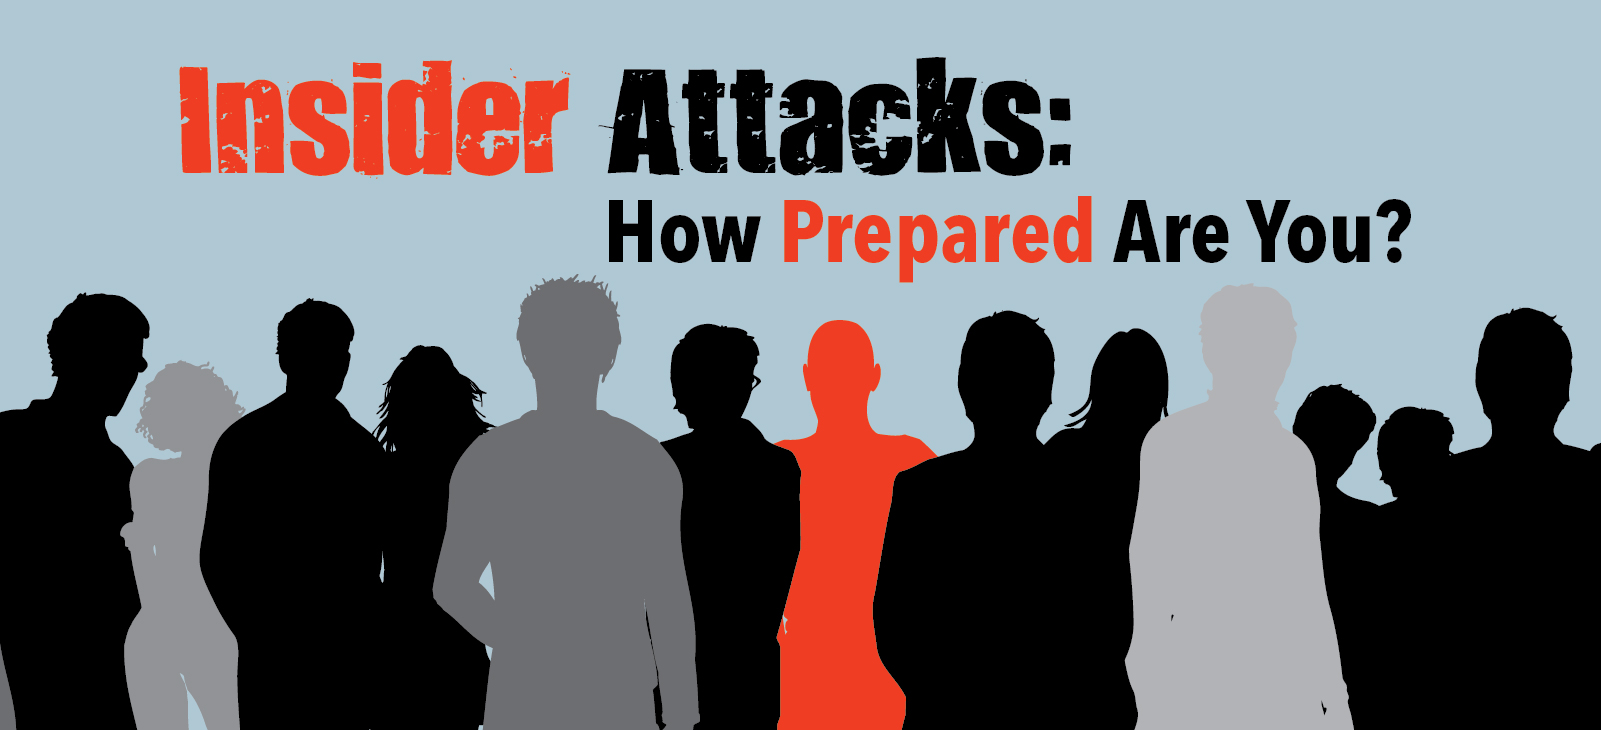 Insider Attacks: How Prepared Are You?